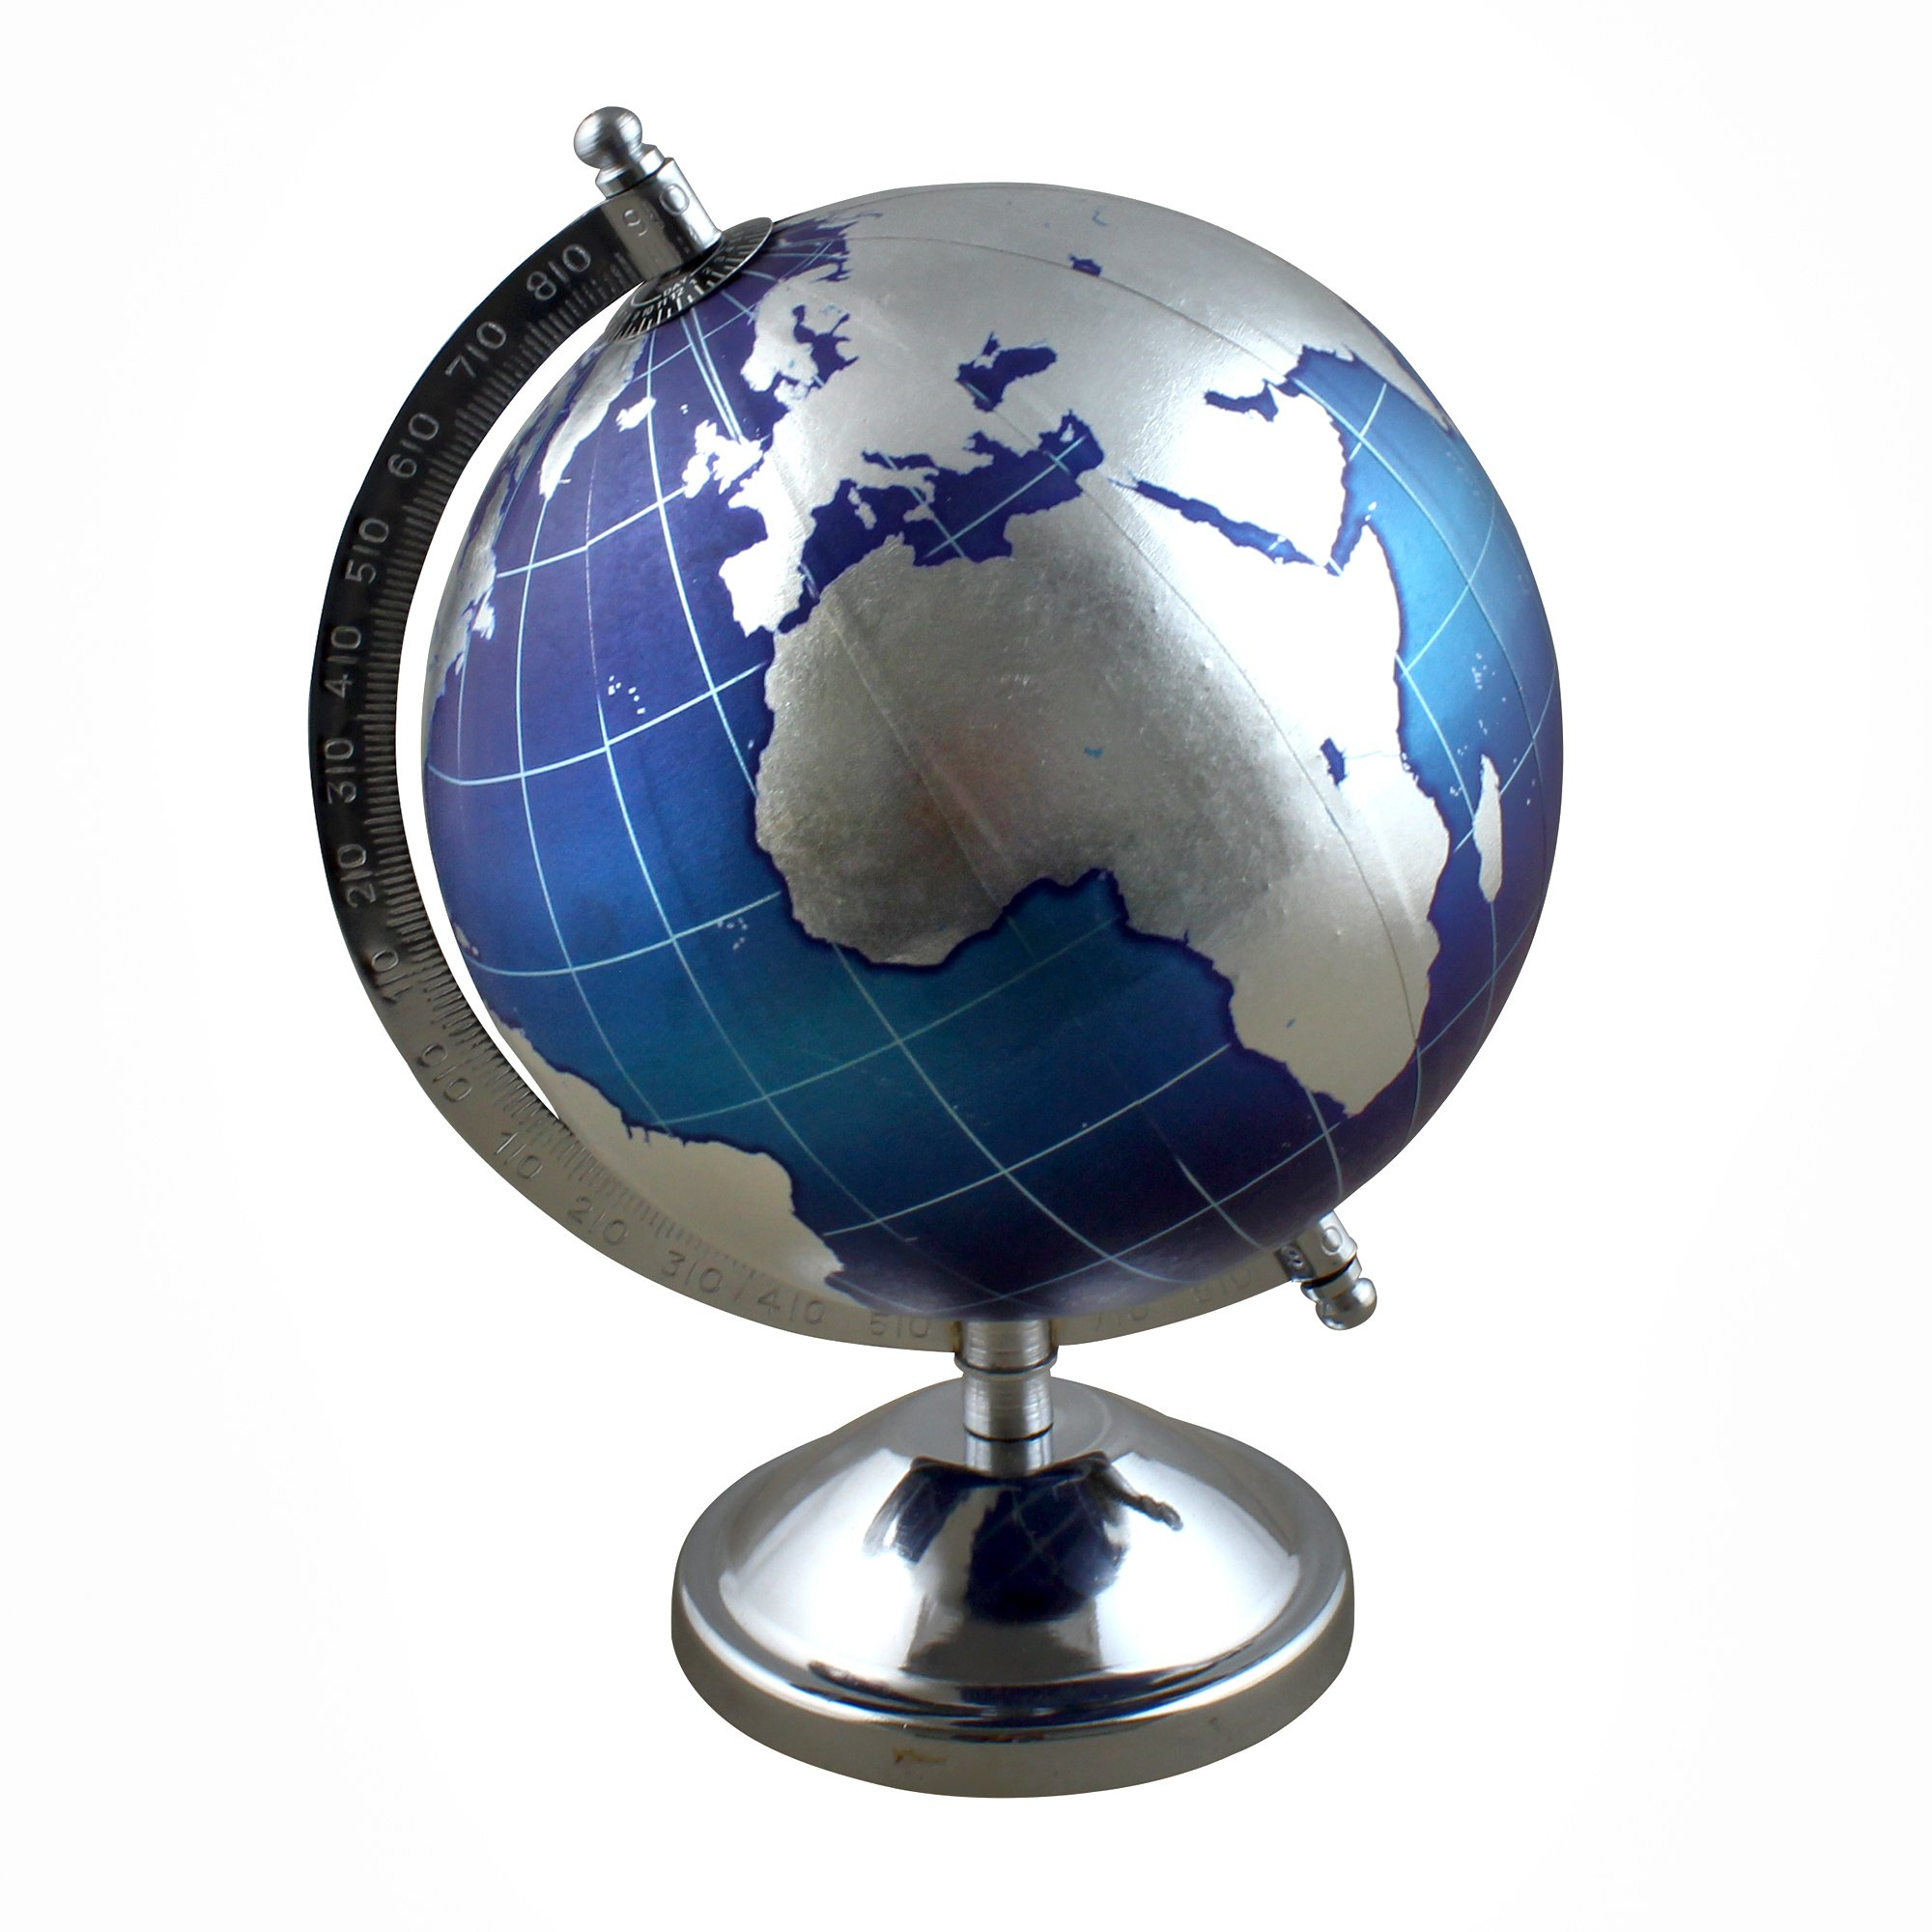 Desktop World Globe Map Rotating Political with Stand, 9.5 Inches - Gift for Home Office Desk Decoration - Stock Clearance Sale!!